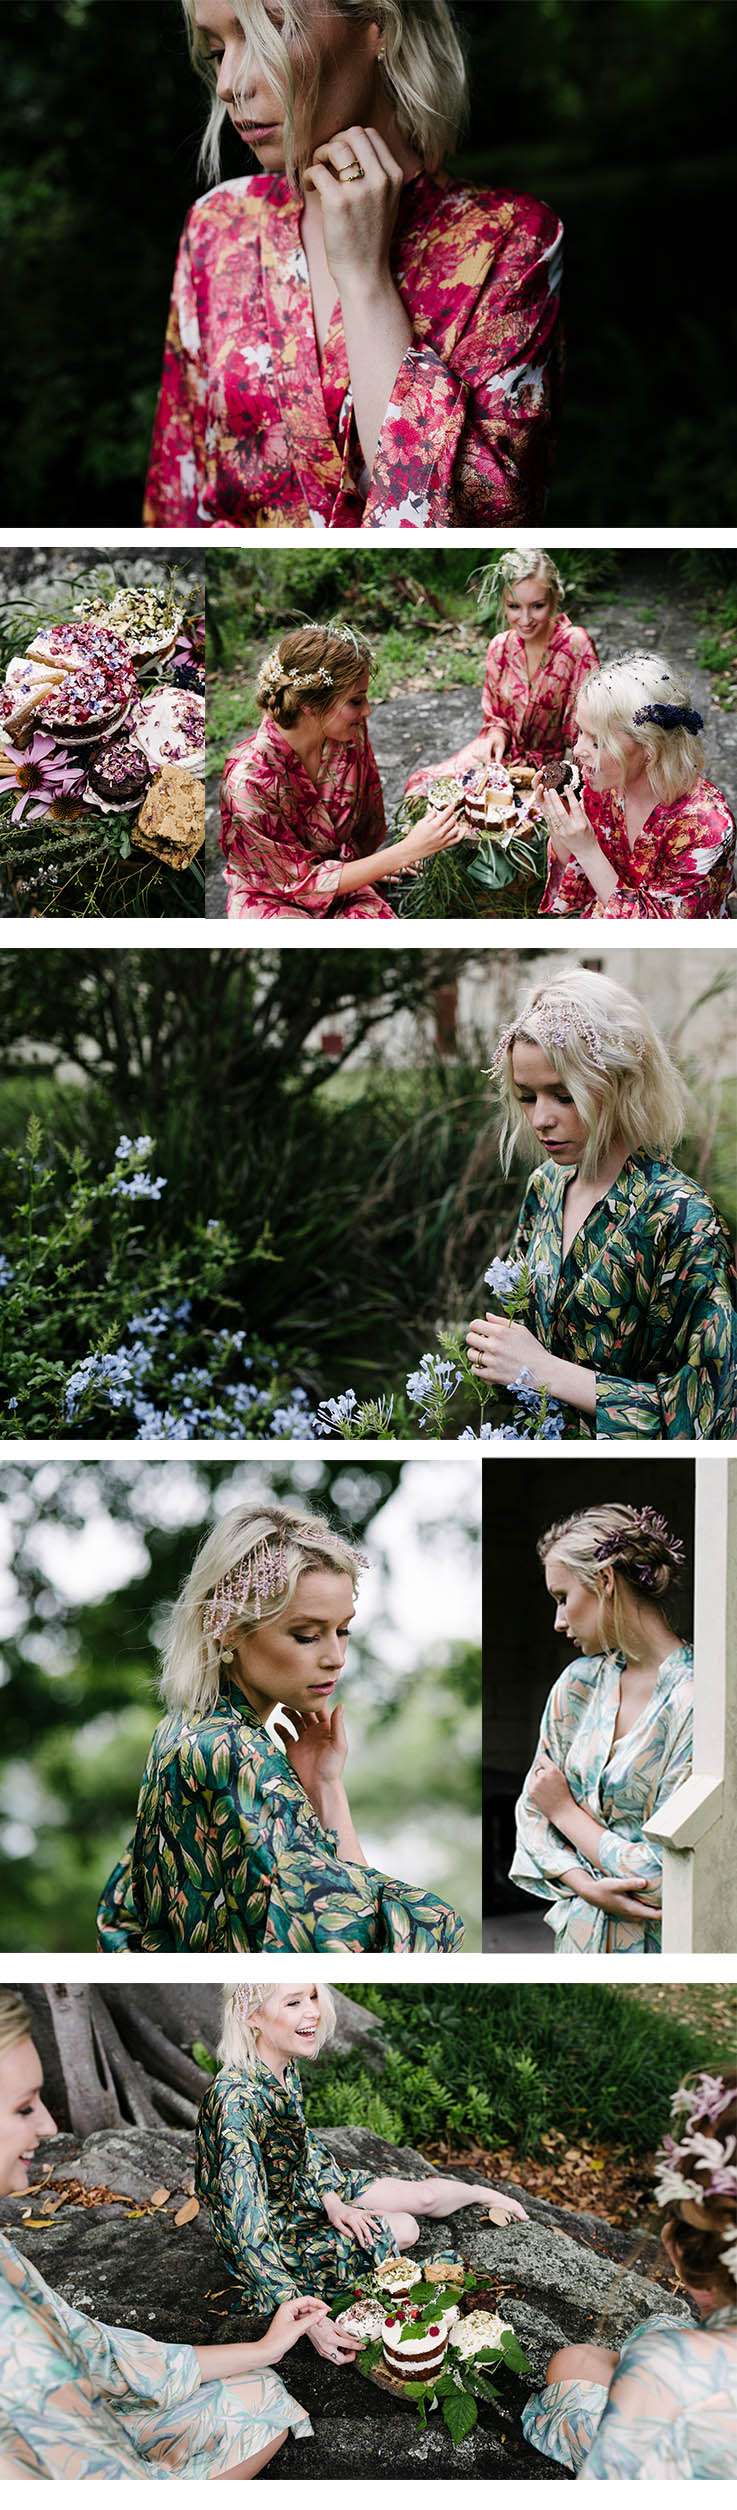 You can see the bride and her bridesmaids full journey at  https://whitemag.com/inspiration/black-forest/   Credits   Photographer    Damien Milan    Jewellery    Courtesy of the Artist        Florals    Sophia Kaplan        Stylist    Anastasia Gladushchenko,     Hair + Make-up    Renae Michel     Cake    Wild Flour Sydney